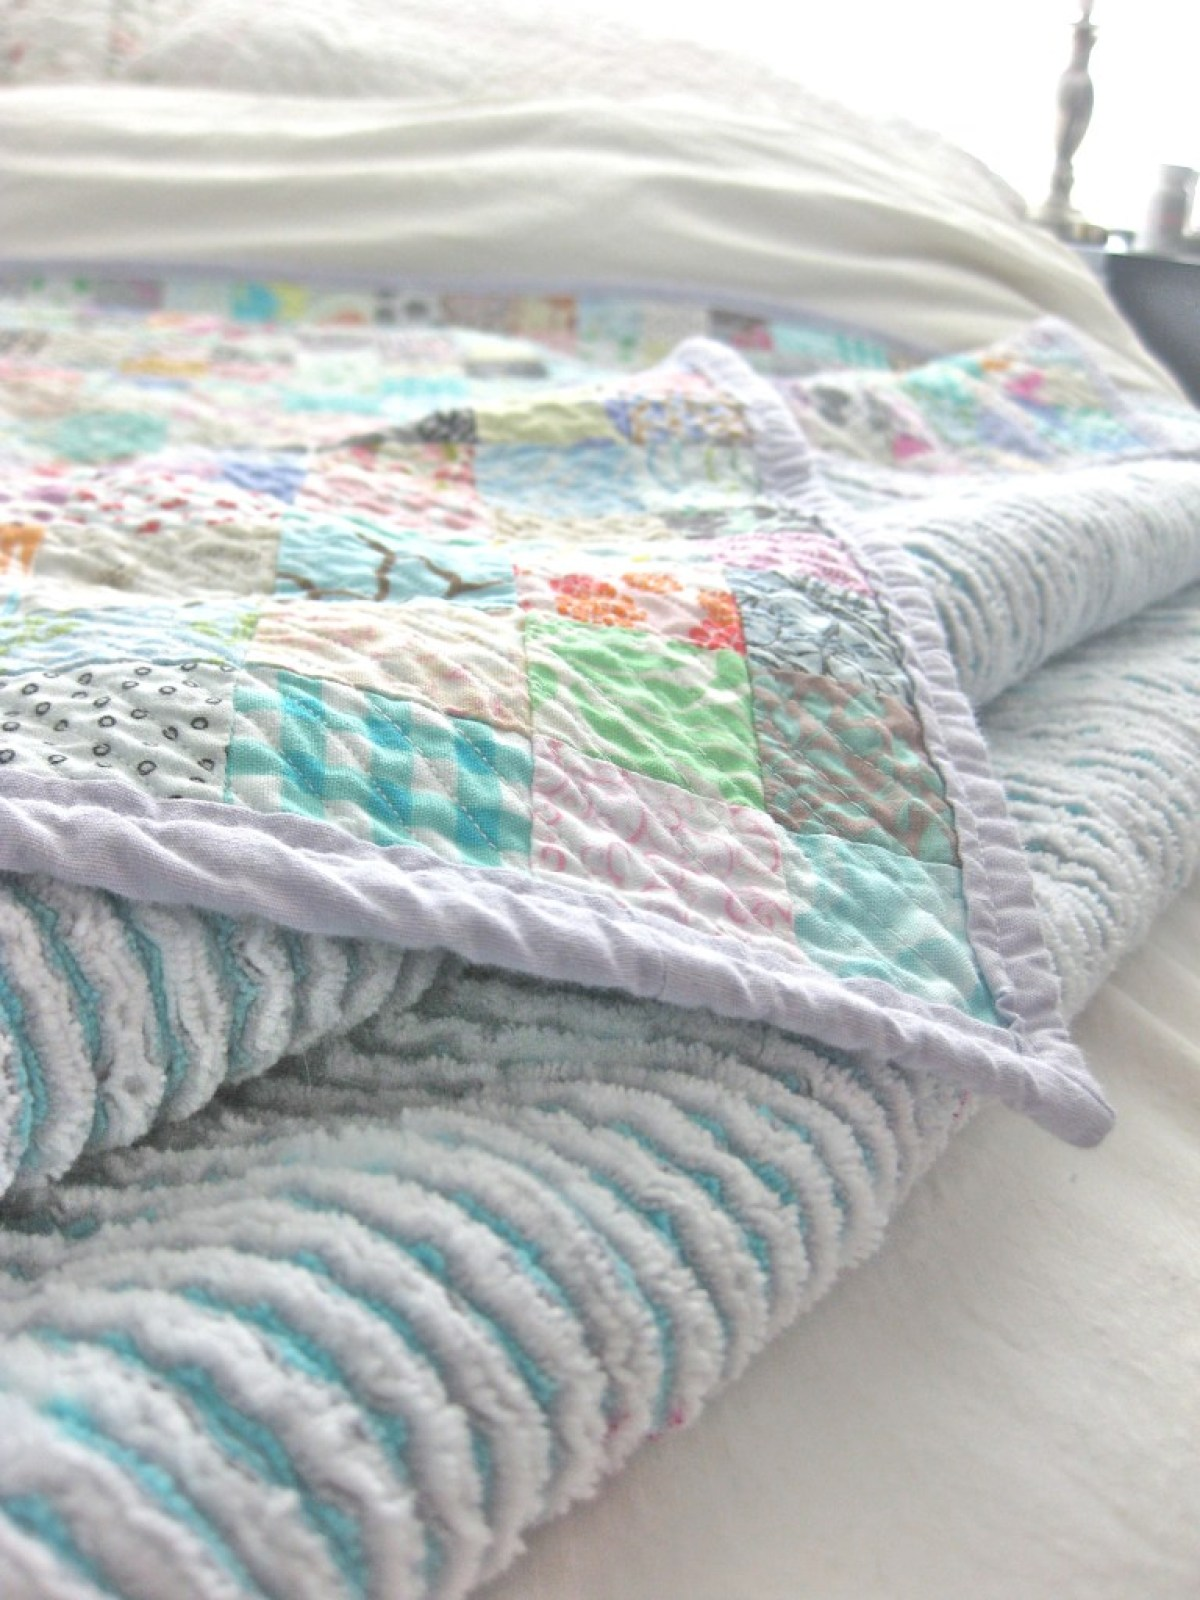 10 Free Modern Quilt Patterns For Beginners! - Queen Size Faux Chenille Quilt – from Making Things is Awesome